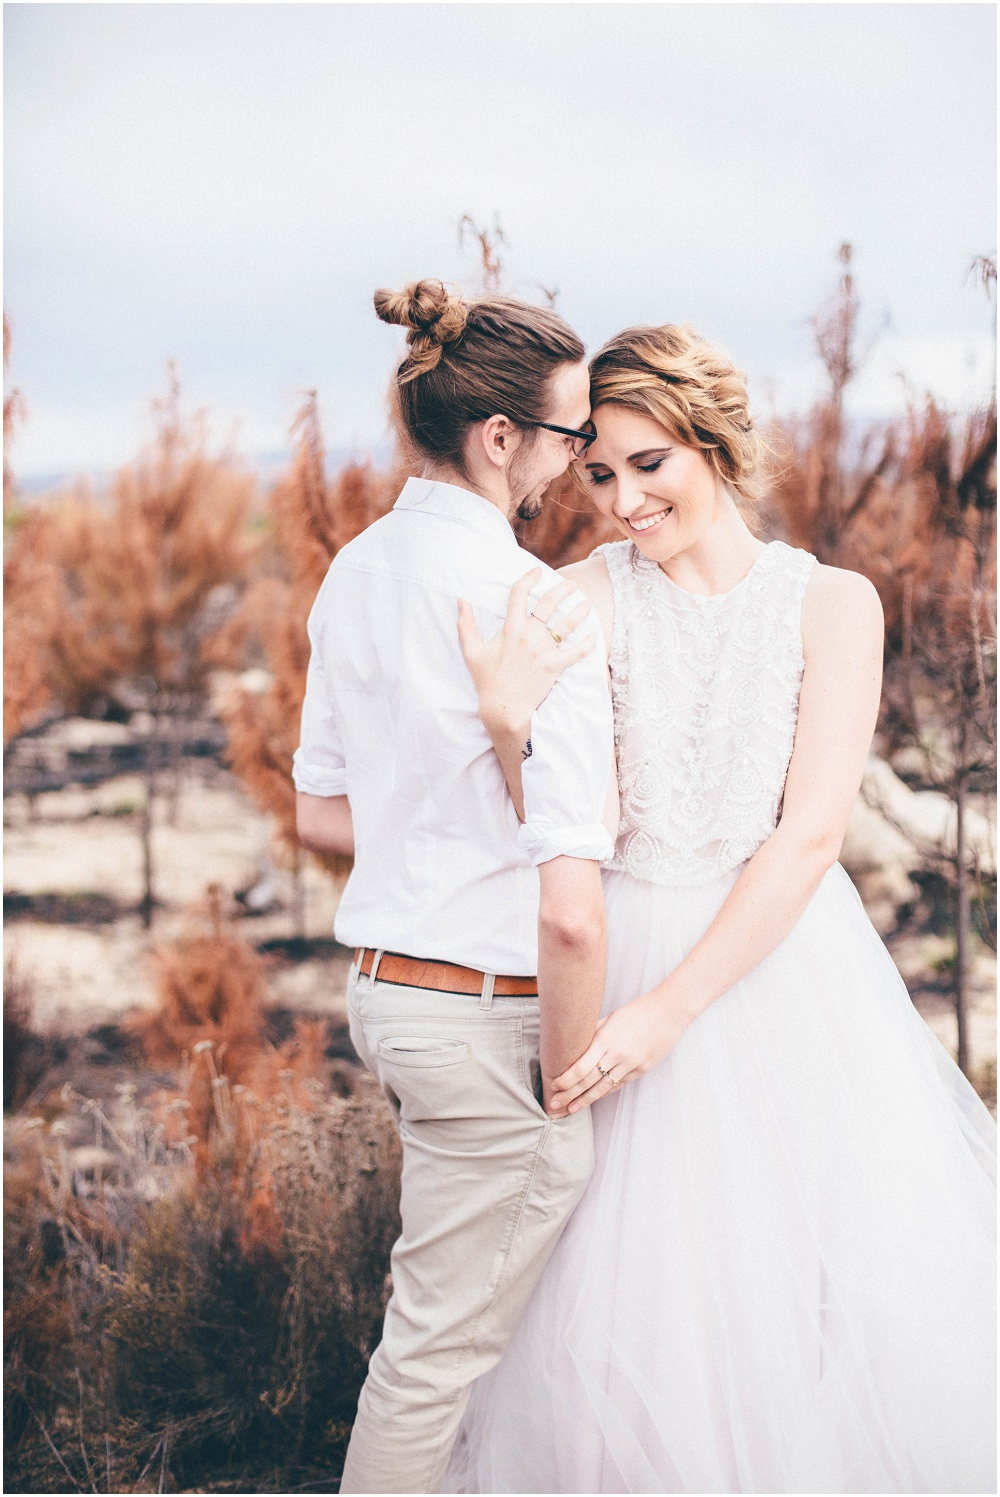 Ronel Kruger Cape Town Wedding and Lifestyle Photographer_4002.jpg